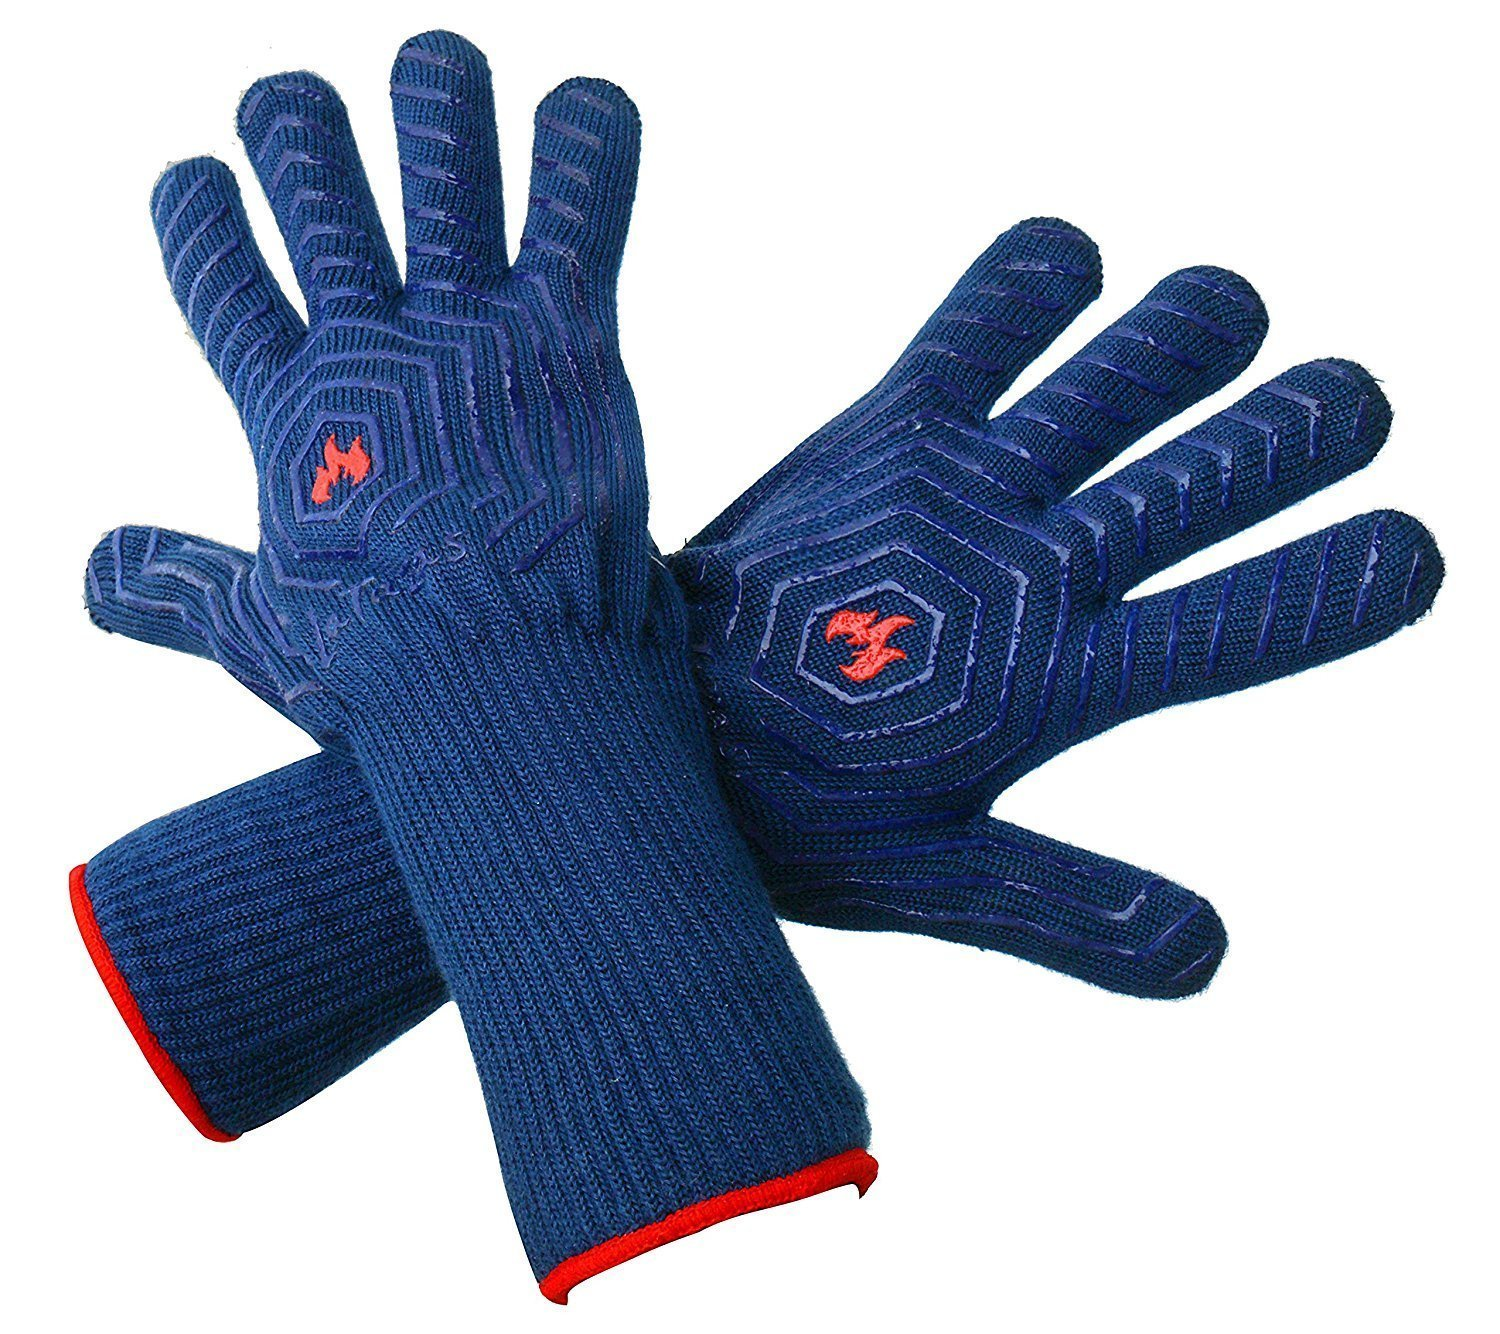 Latazas Extreme Heat Resistant Grill Oven Mitts The